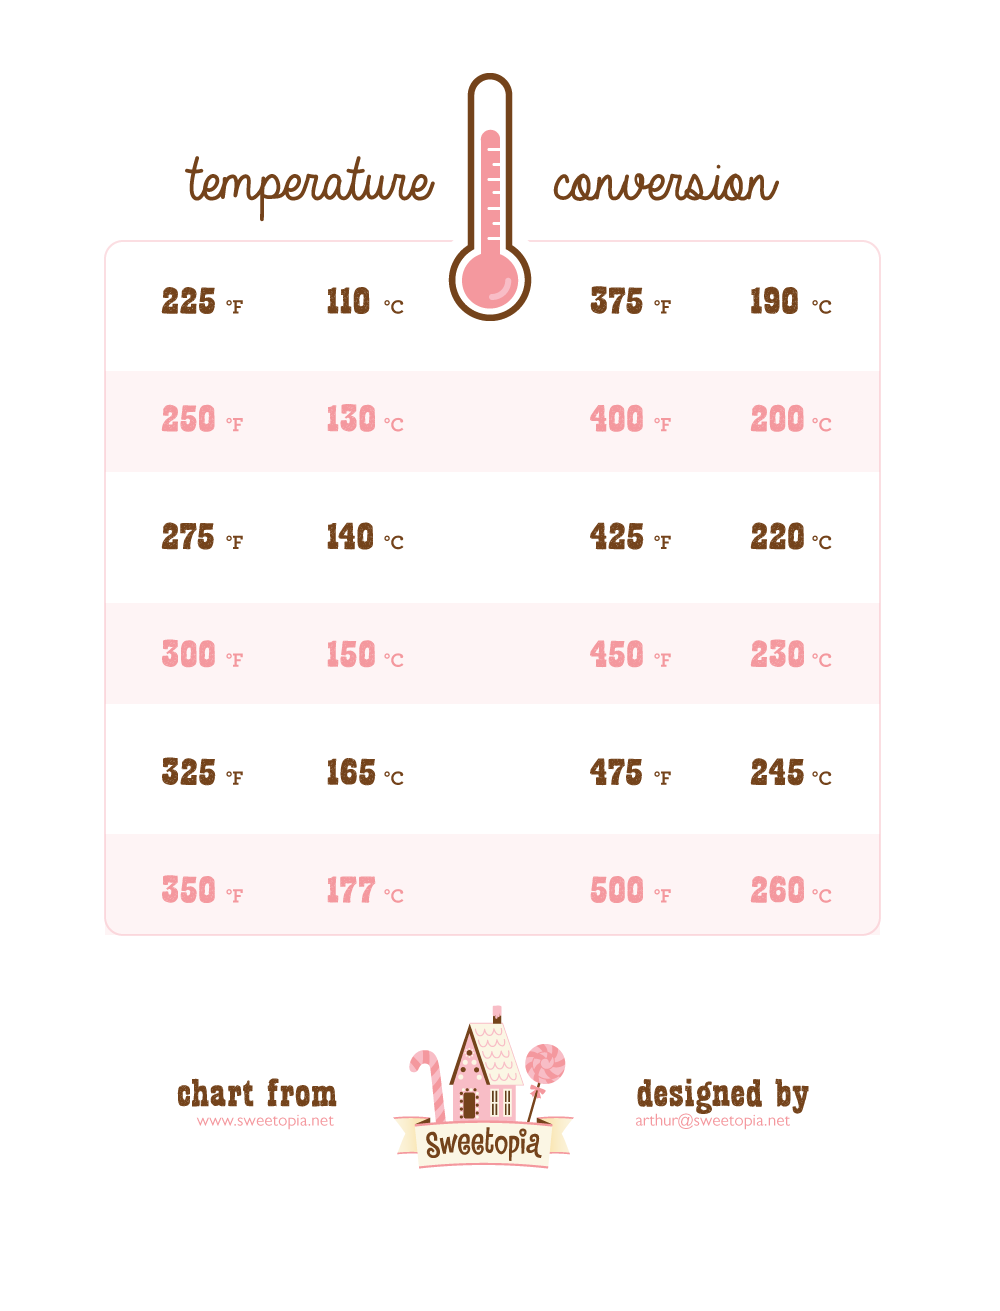 Oven temperatures conversion chart sweetopia temperature conversion chart geenschuldenfo Images